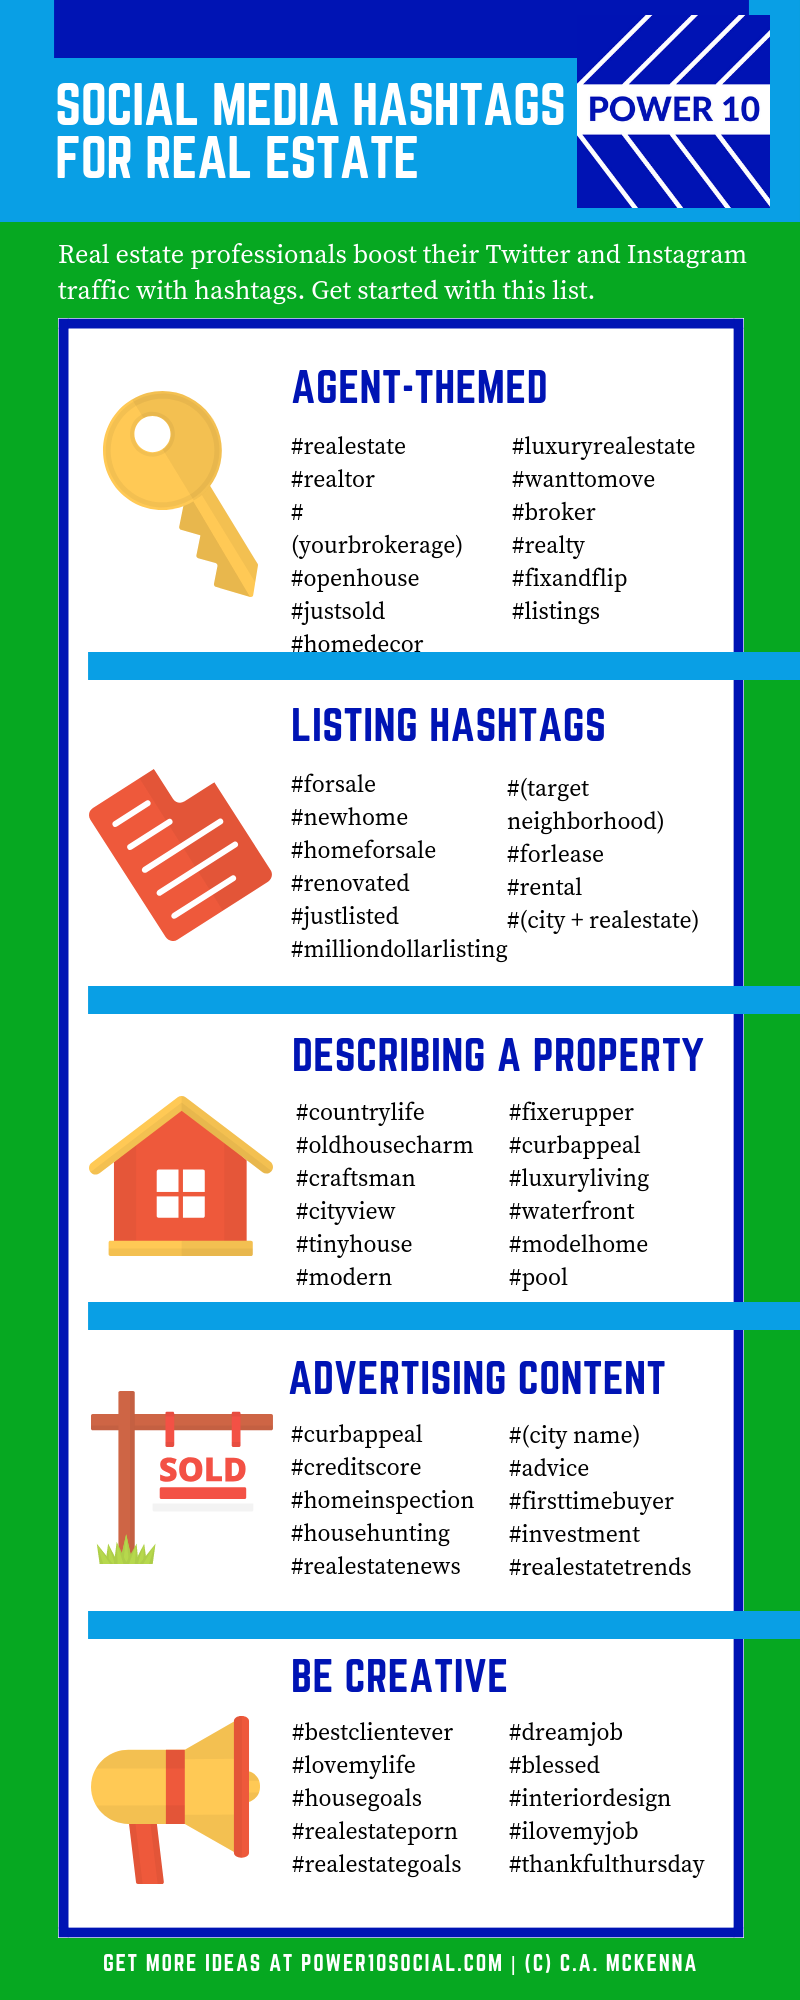 Infographic: Social Media Hashtags for Real Estate